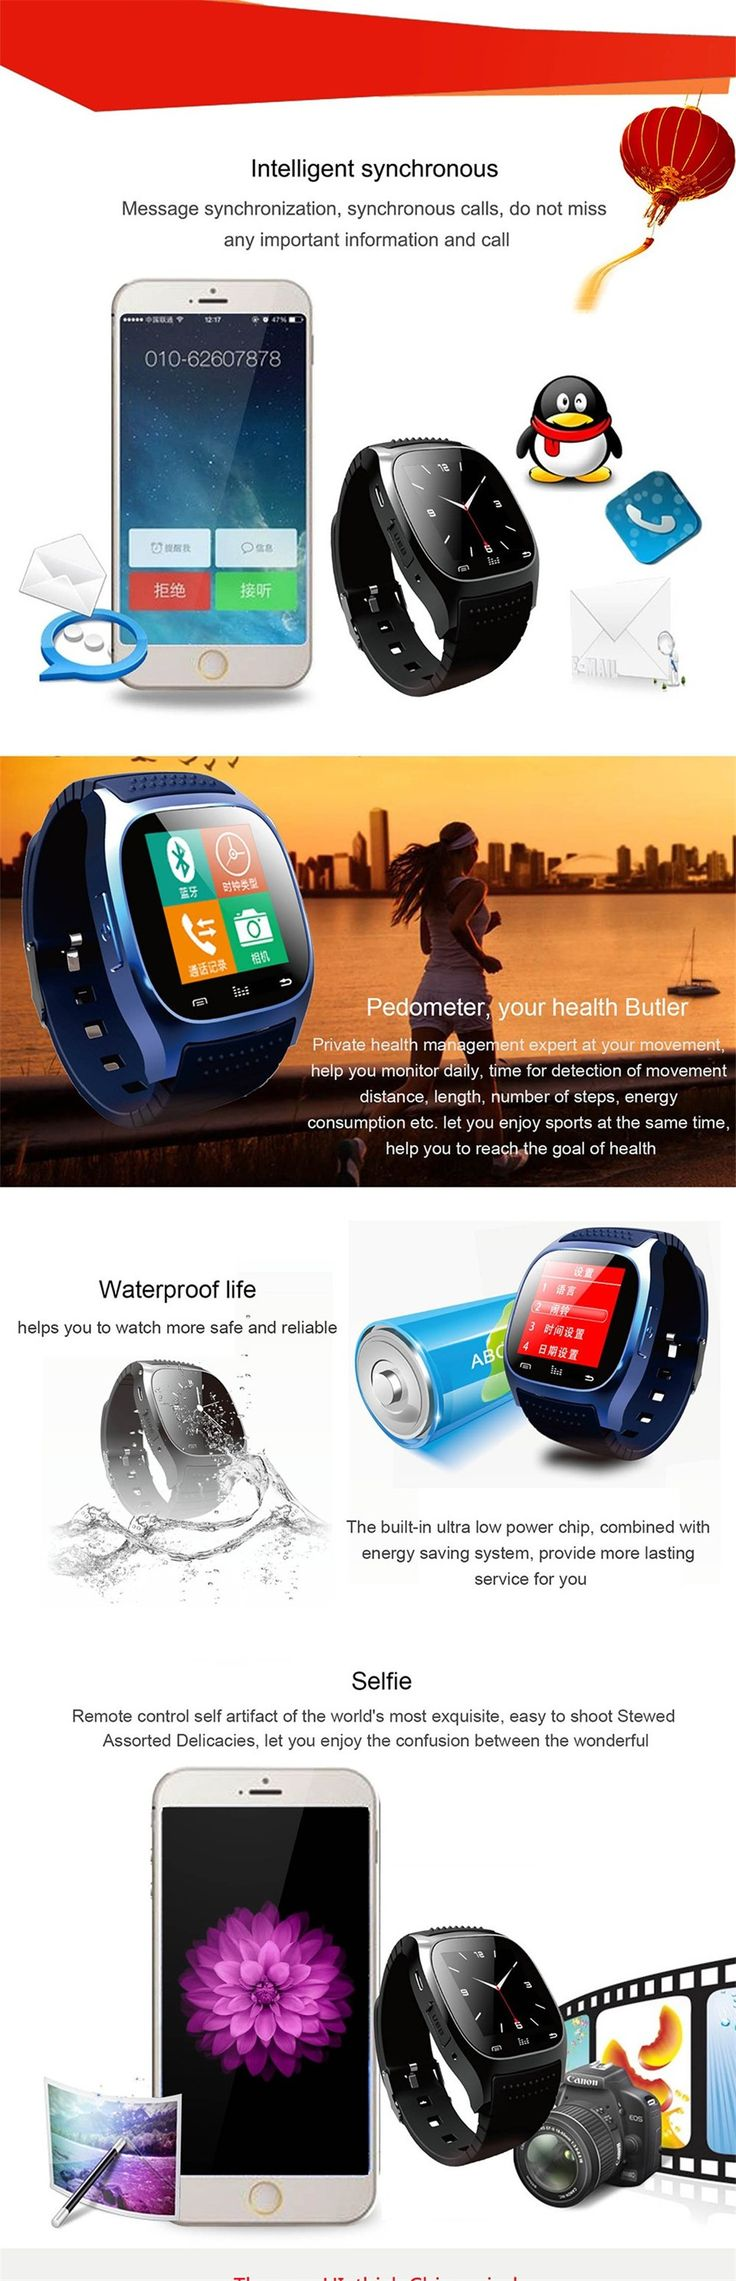 USD 19.99/pieceUSD 16.95/pieceUSD 11.99/pieceUSD 14.93/pieceUSD 9.99-19.99/pieceUSD 29.95/pieceUSD 36.80/pieceUSD 45.90/piece Symrun New Bluetooth Smart Watch Smartwatch With Dial Alarm Music Player Pedometer For Android Htc Mobile Phone Smart Wach M26 NOTE: 1.Android System can support all function in the description. IOS system does not support the information Remind, the remote notification, and remote camera, browser, QQ, ...